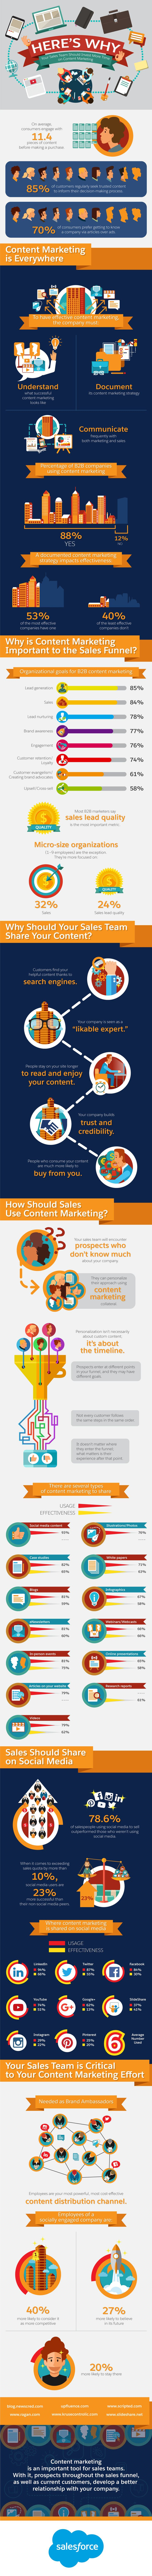 Why Your Sales Team Should Invest More Time on Content Marketing [Infographic] - @socialmedia2day